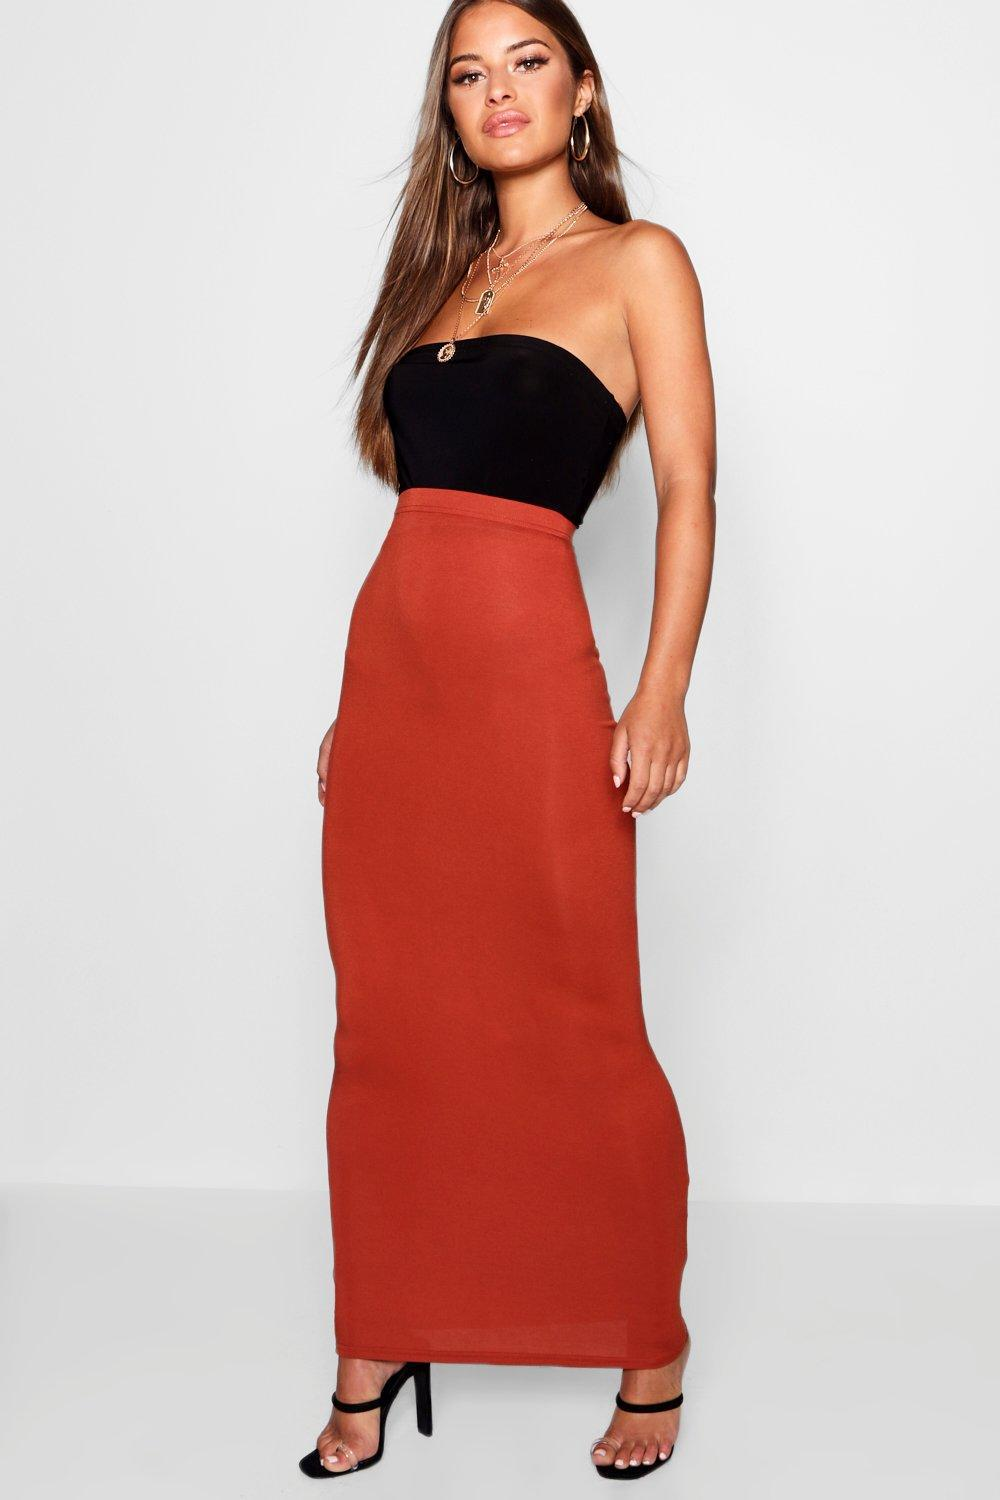 66307f380df Lyst - Boohoo Petite Jersey Basic Maxi Skirt in Red